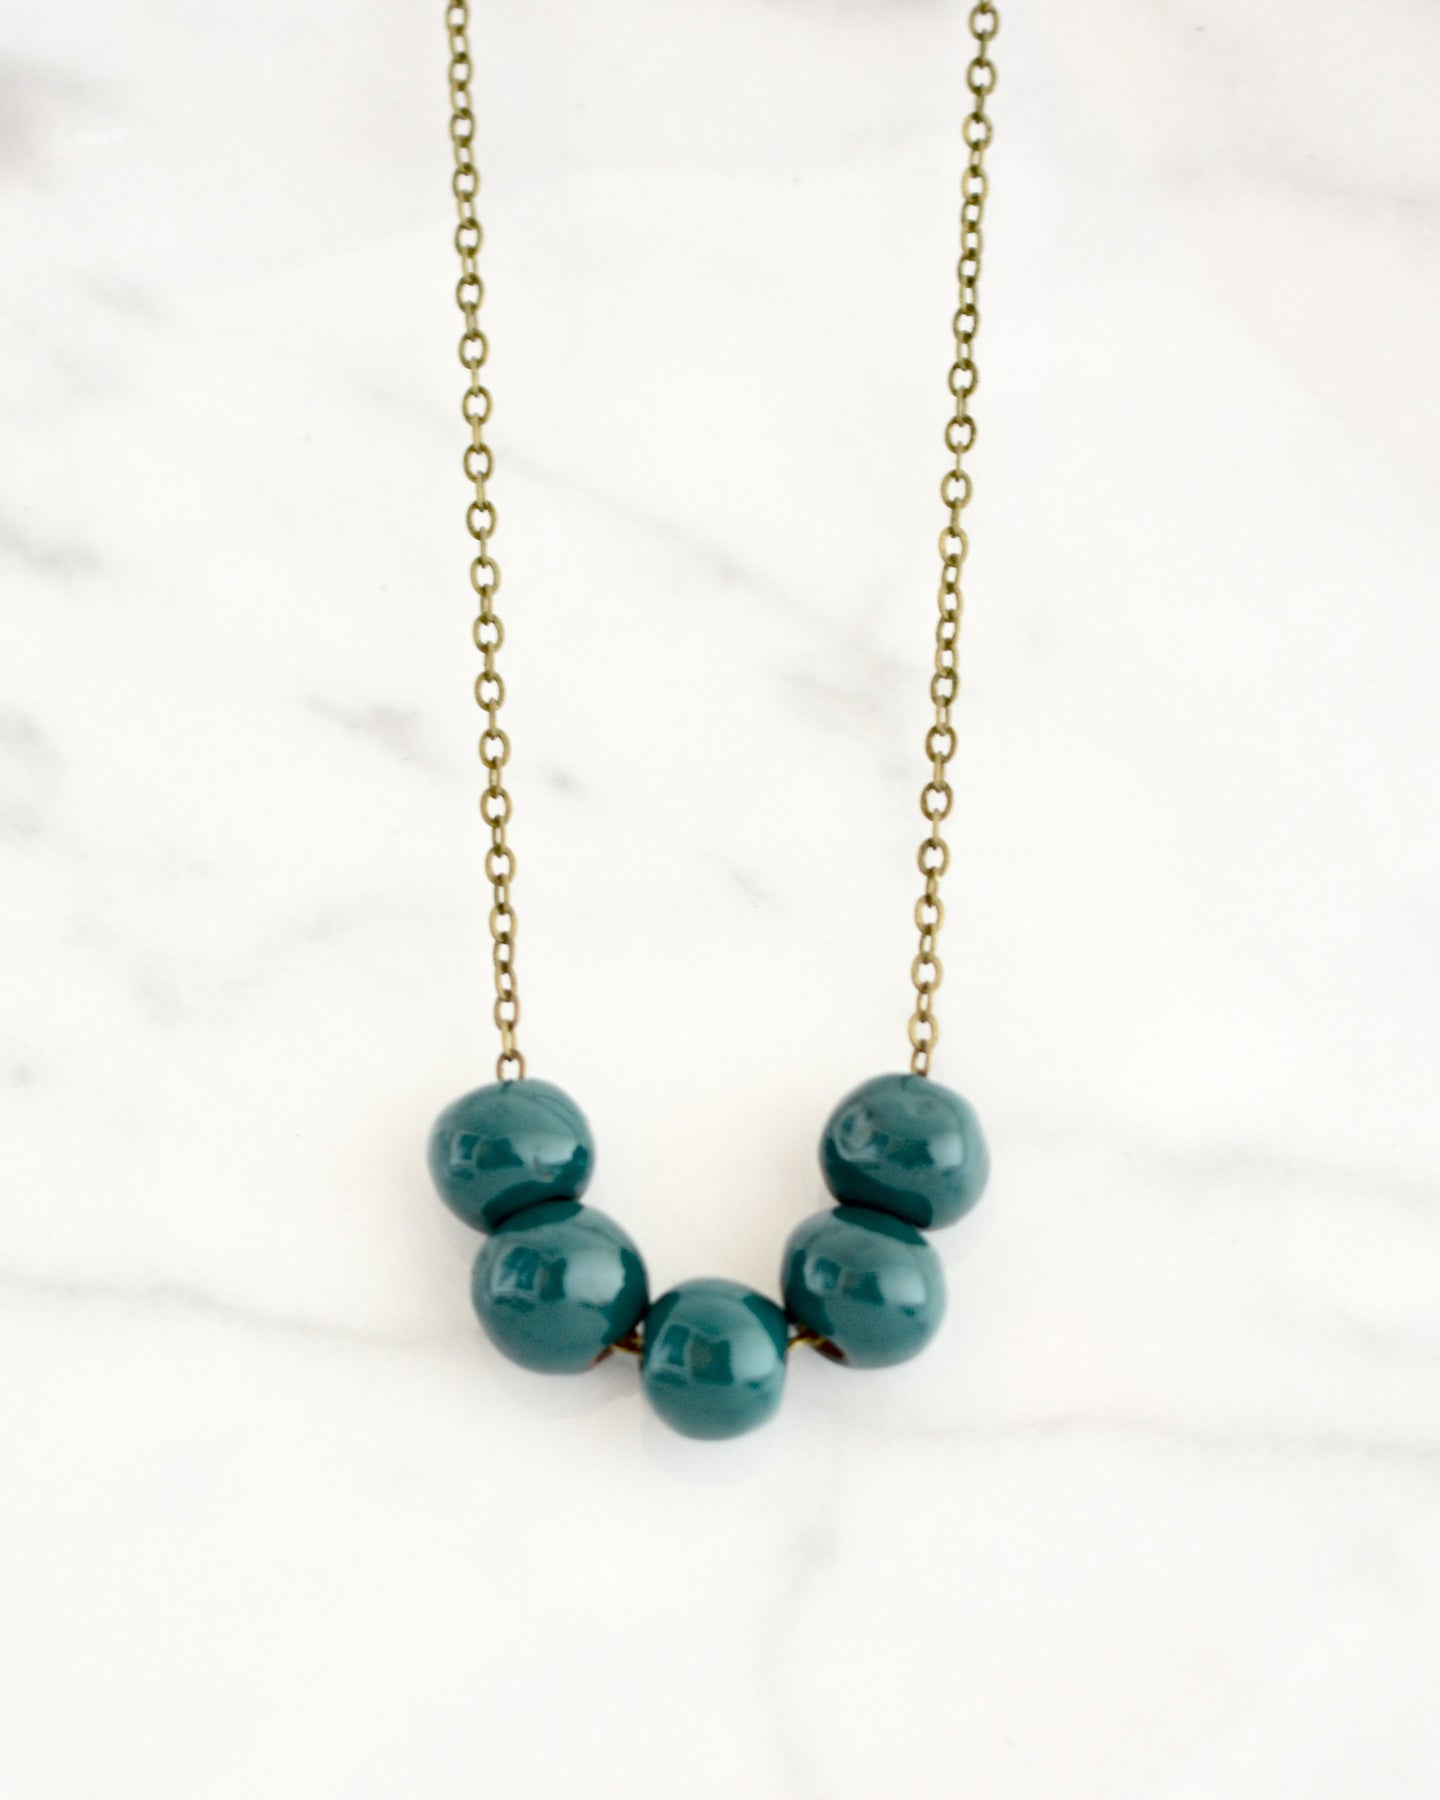 Poppy Necklace - Teal